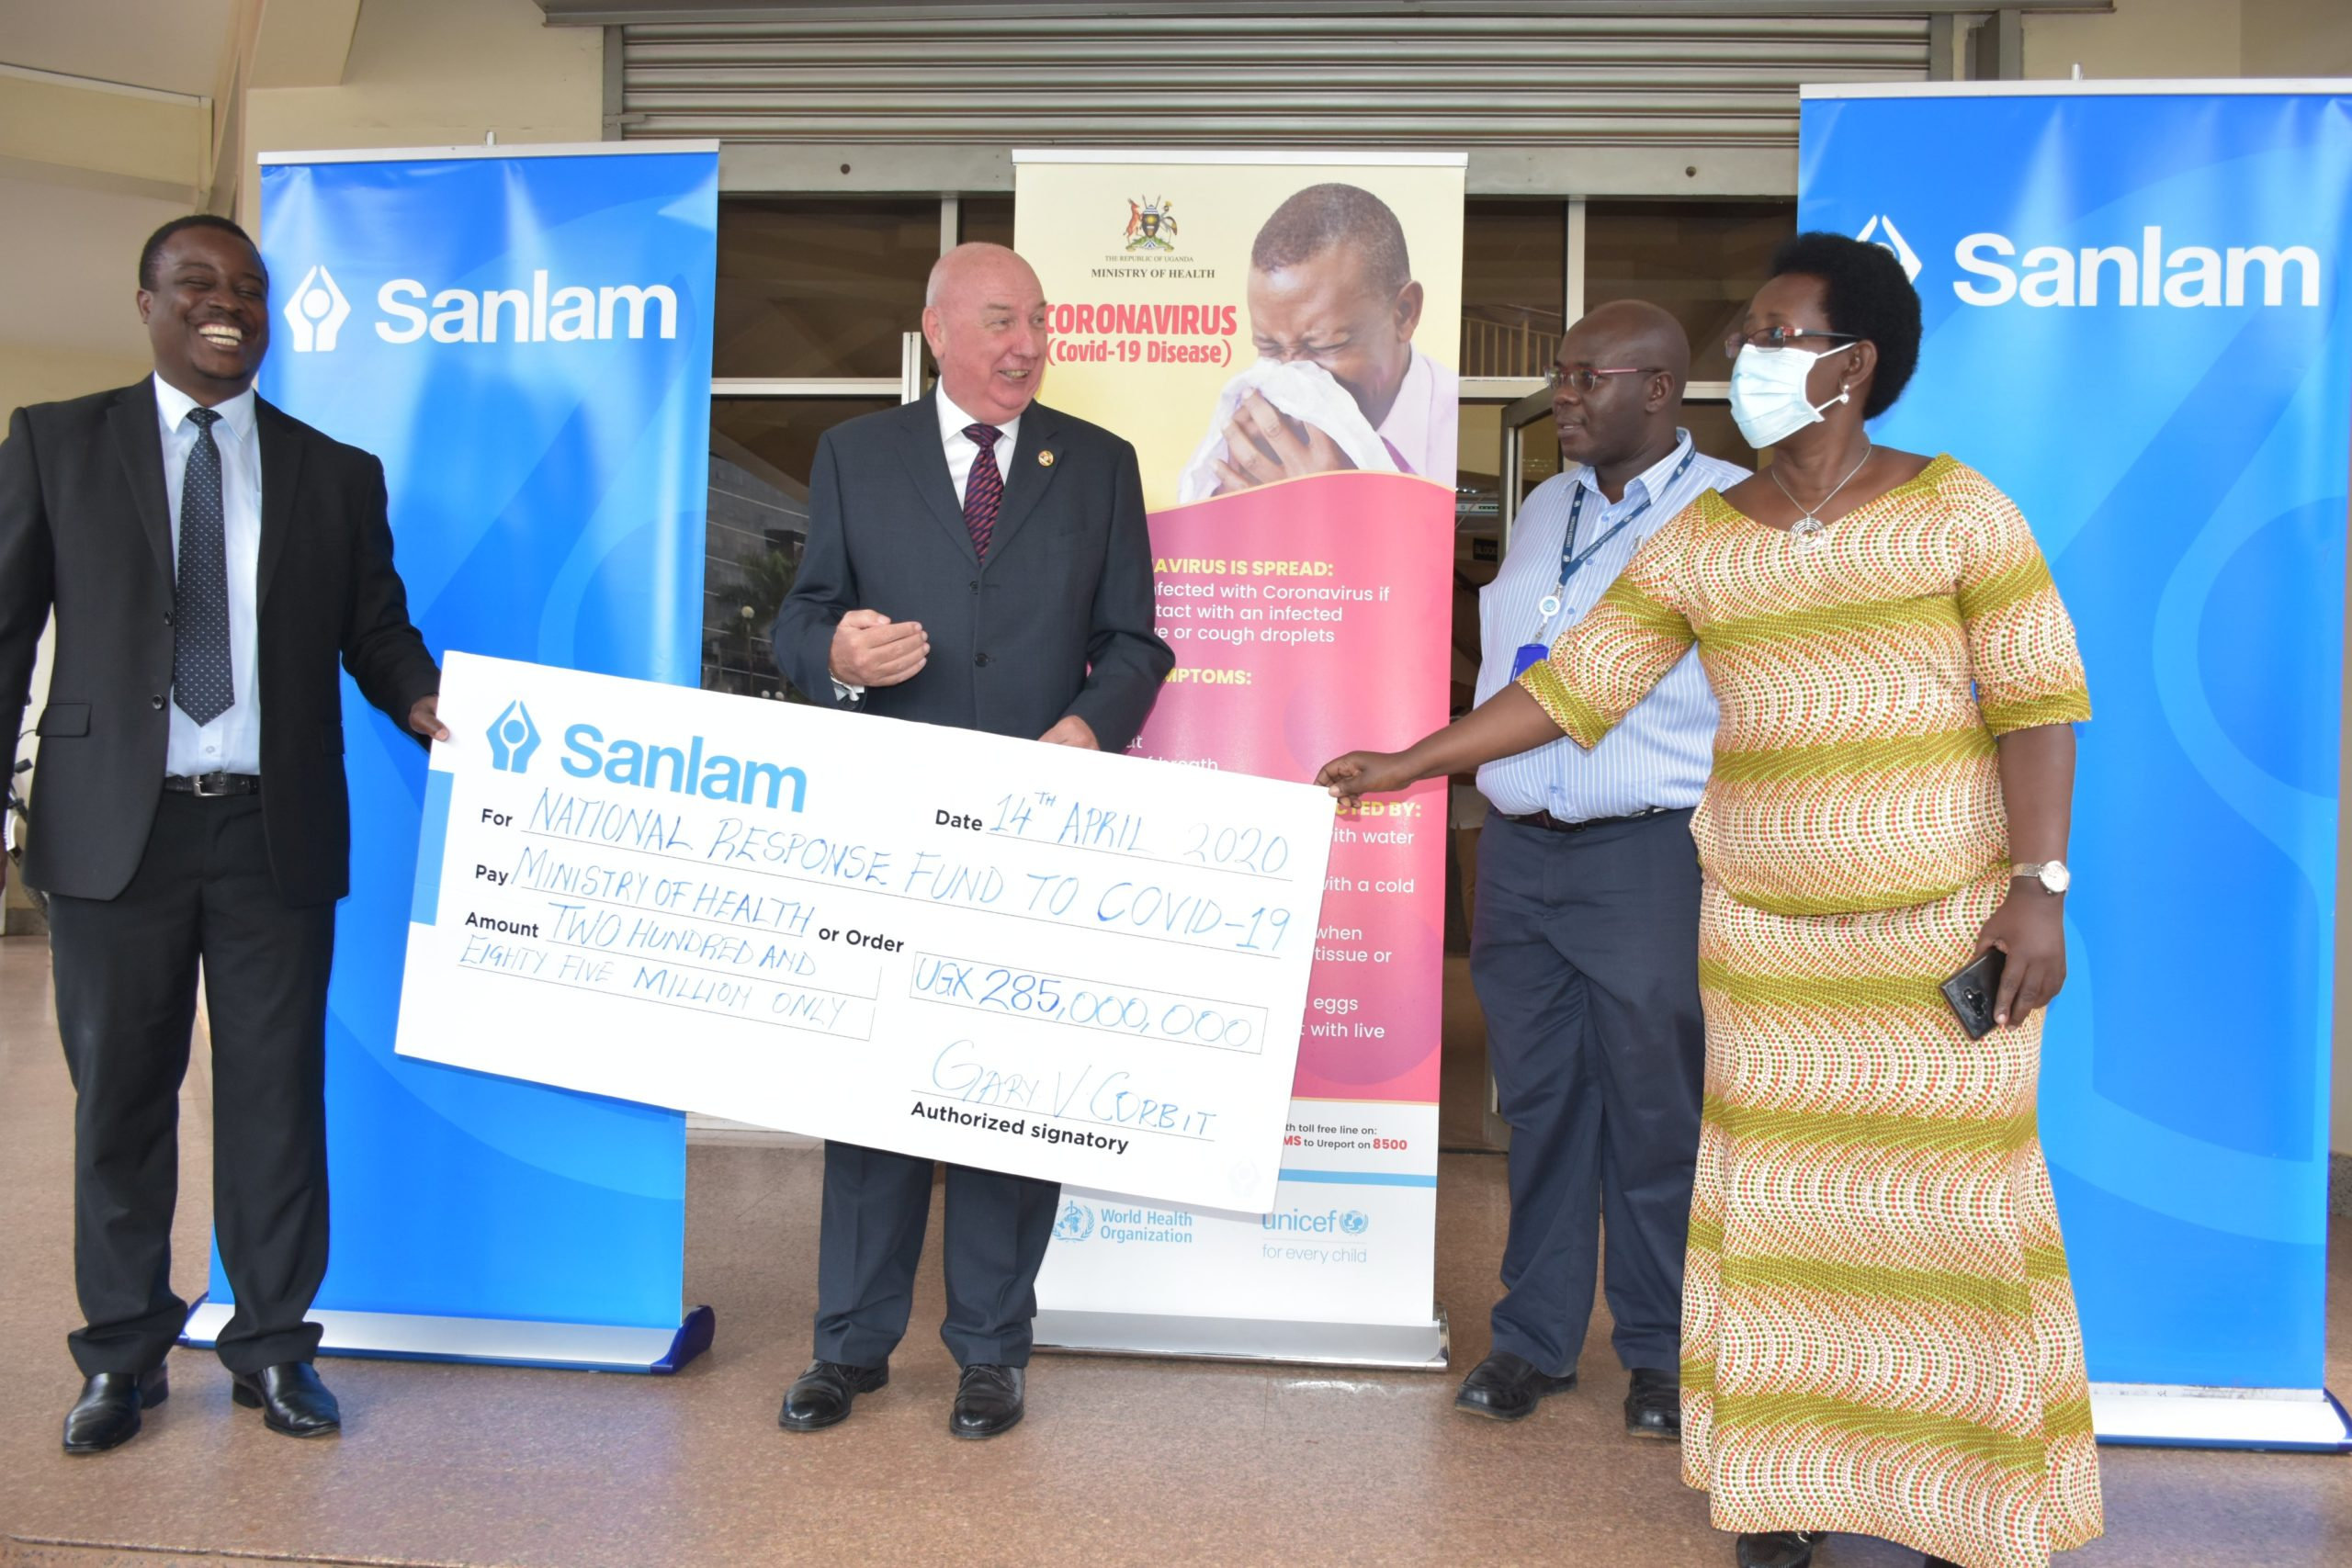 Permanent Secretary, Diana Atwine has received a dummy cheque worth UGX 285 M from sanlam to support the National Response COVID-19 fund (PHOTO/Courtesy)